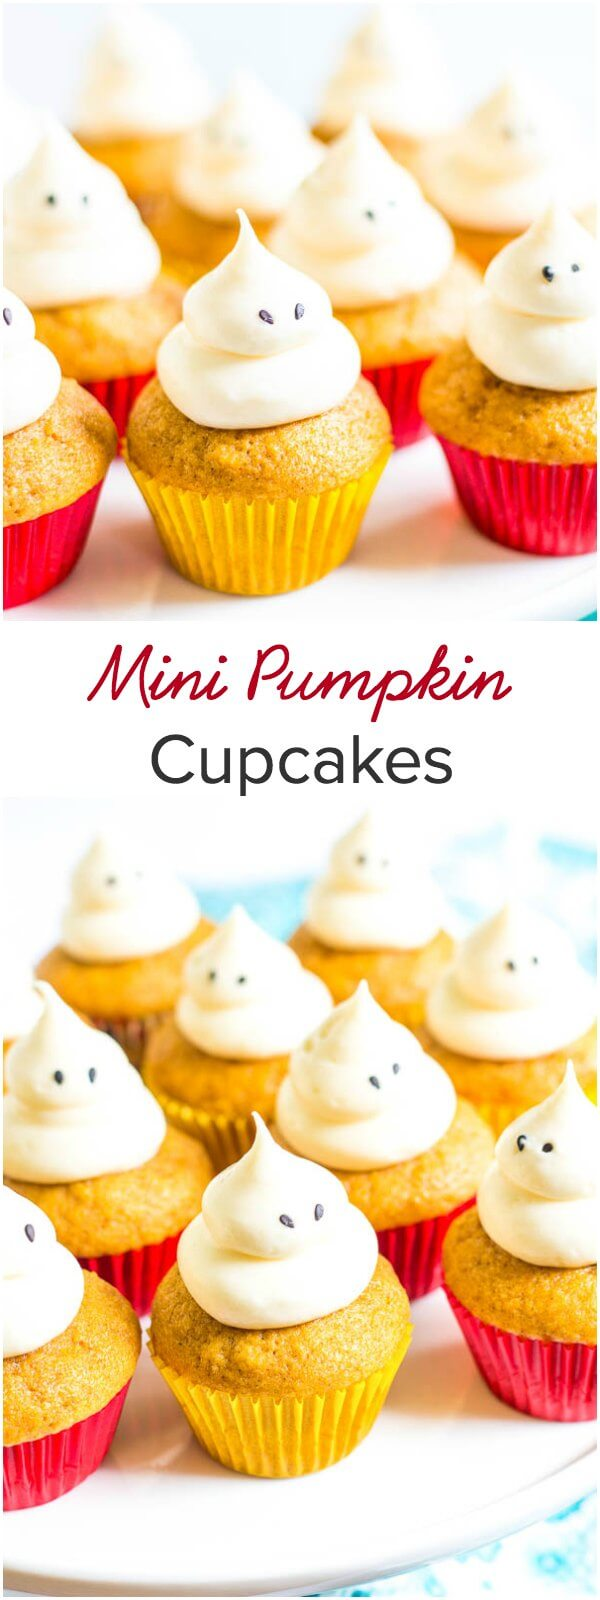 These mini pumpkin cupcakes, topped with classic sweet and tangy cream cheese frosting, are incredibly fluffy, moist, and full of fall flavor. They disappear in seconds!